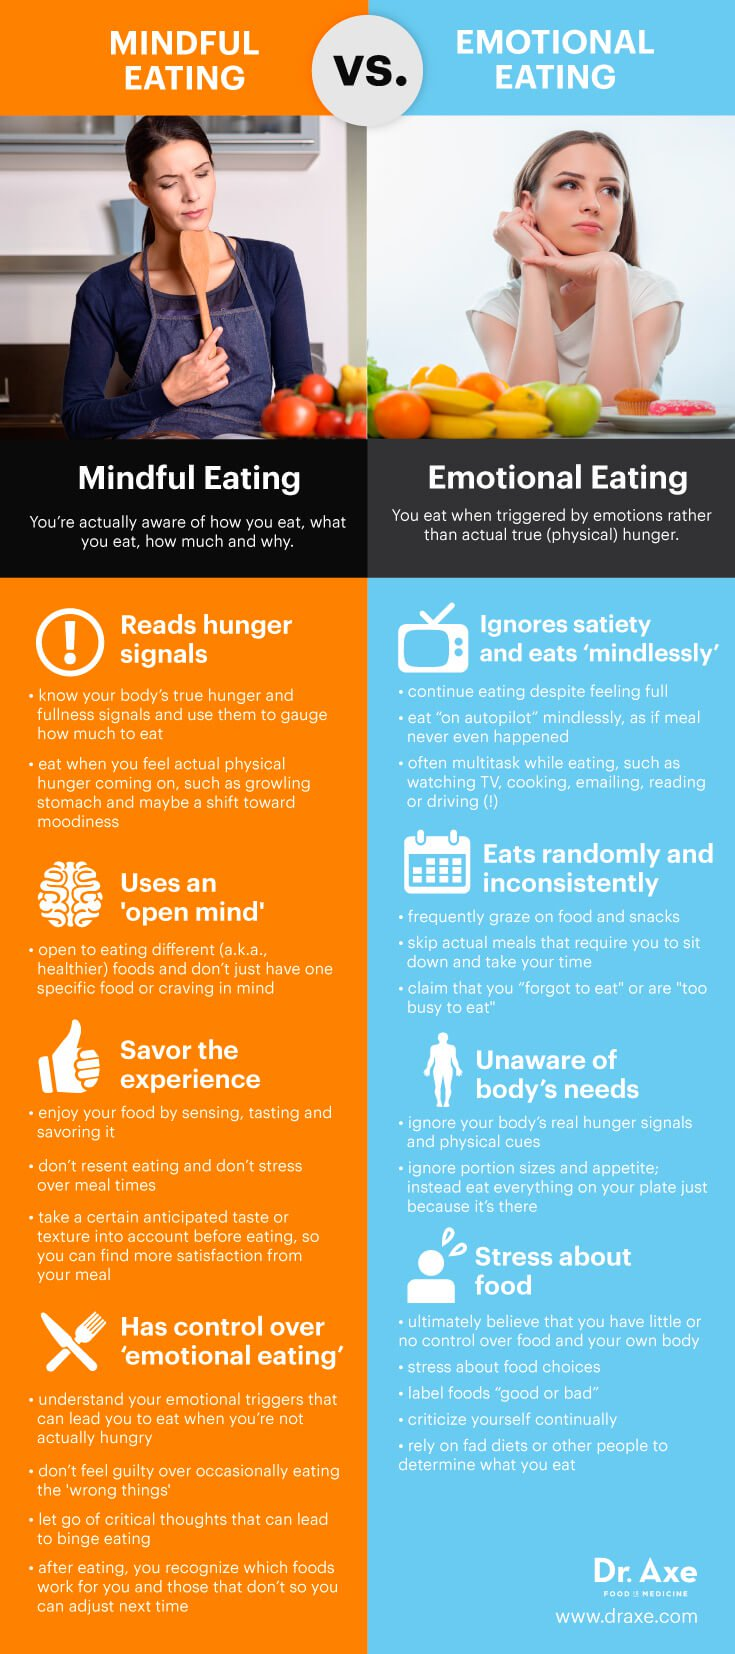 Emotional Eating Versus Mindful Eating: What Are The Differences?